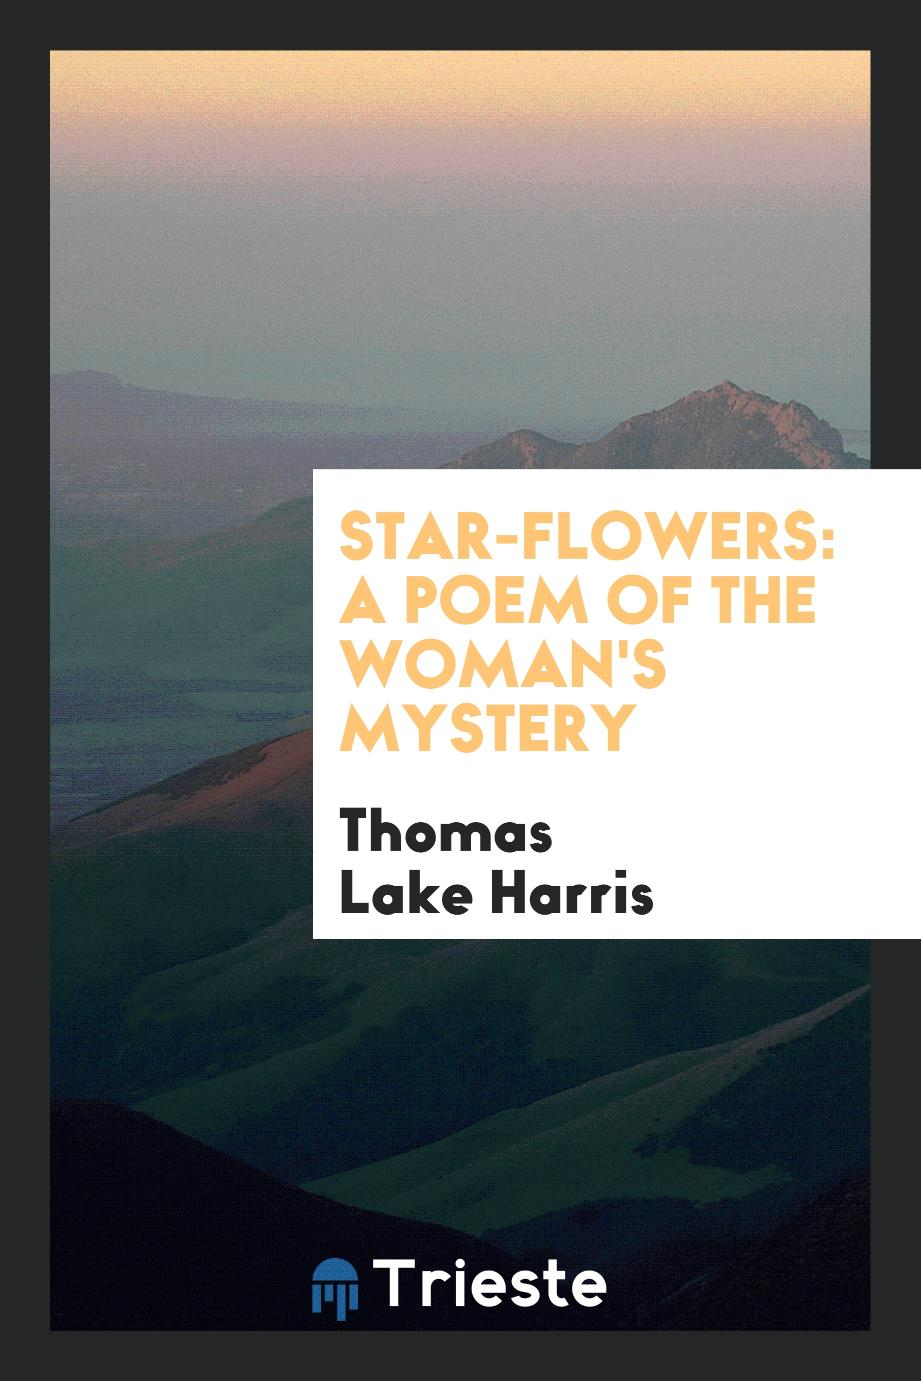 Star-Flowers: A Poem of the Woman's Mystery